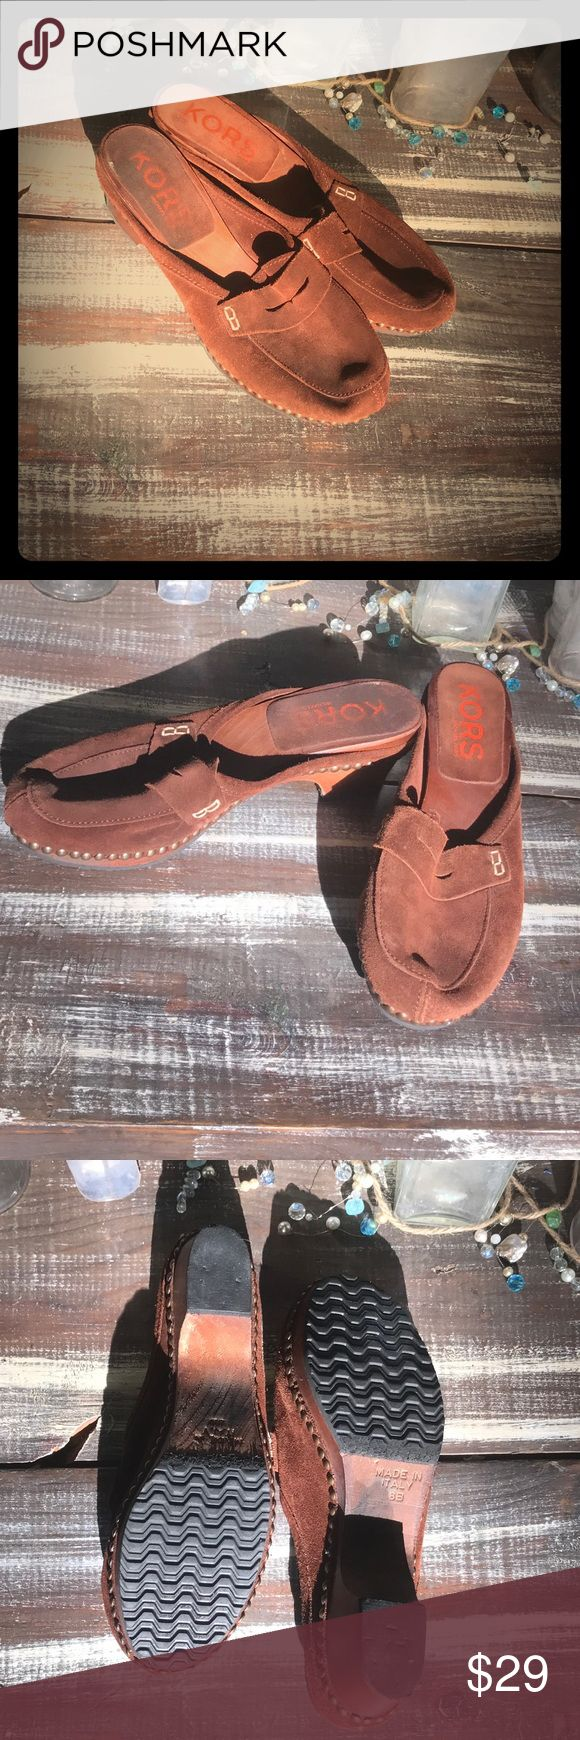 Michael Kors Wooden Heel Clogs 8B Michael Kors Clogs with wooden heel and Suede Upper. Super Cute and well loved. Lots of life left from a smoke free home. Size 8B. KORS Michael Kors Shoes Mules & Clogs